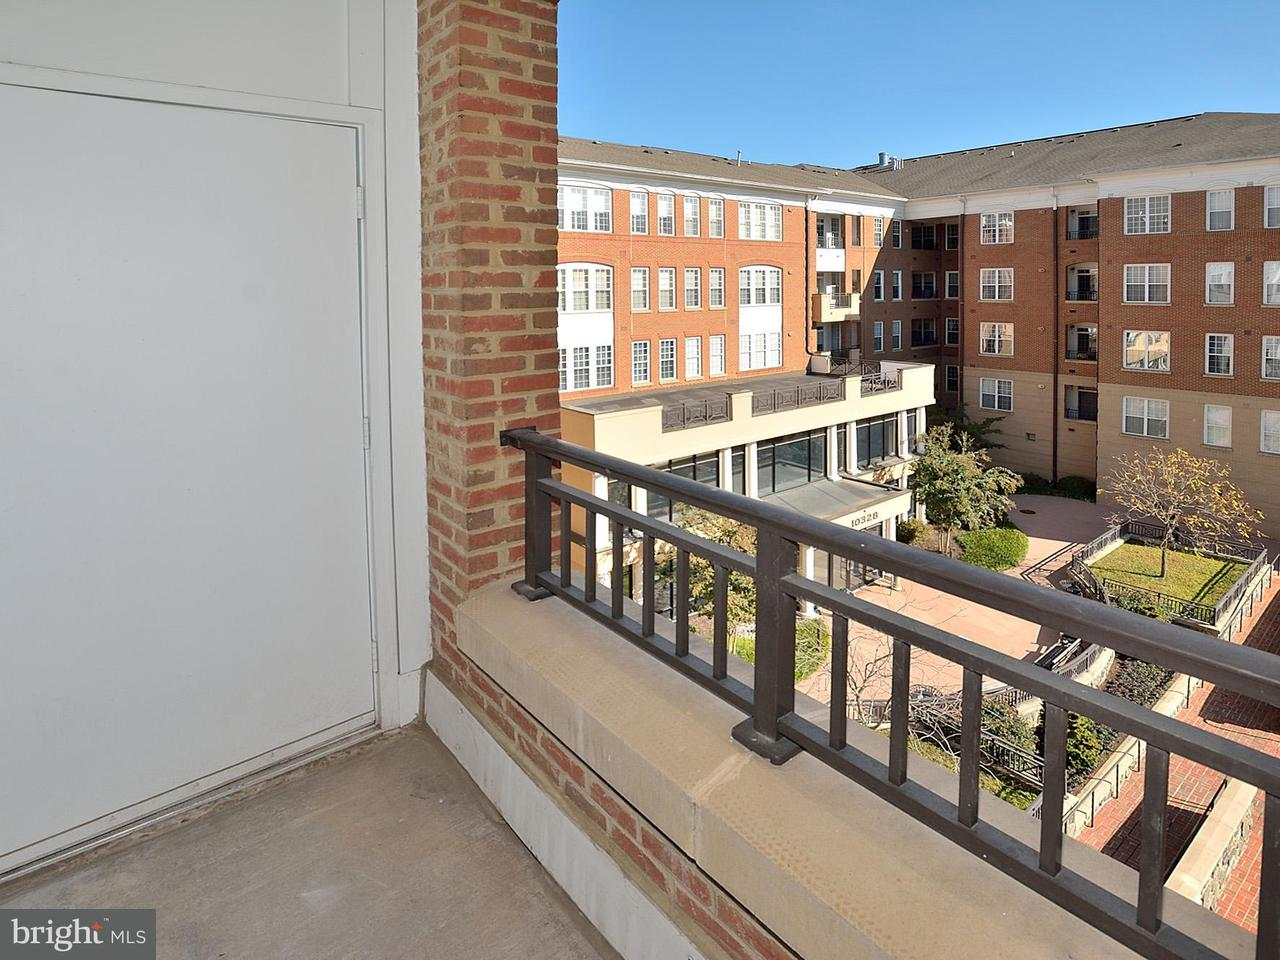 Additional photo for property listing at 10328 Sager Ave #321 10328 Sager Ave #321 Fairfax, Virginia 22030 Stati Uniti